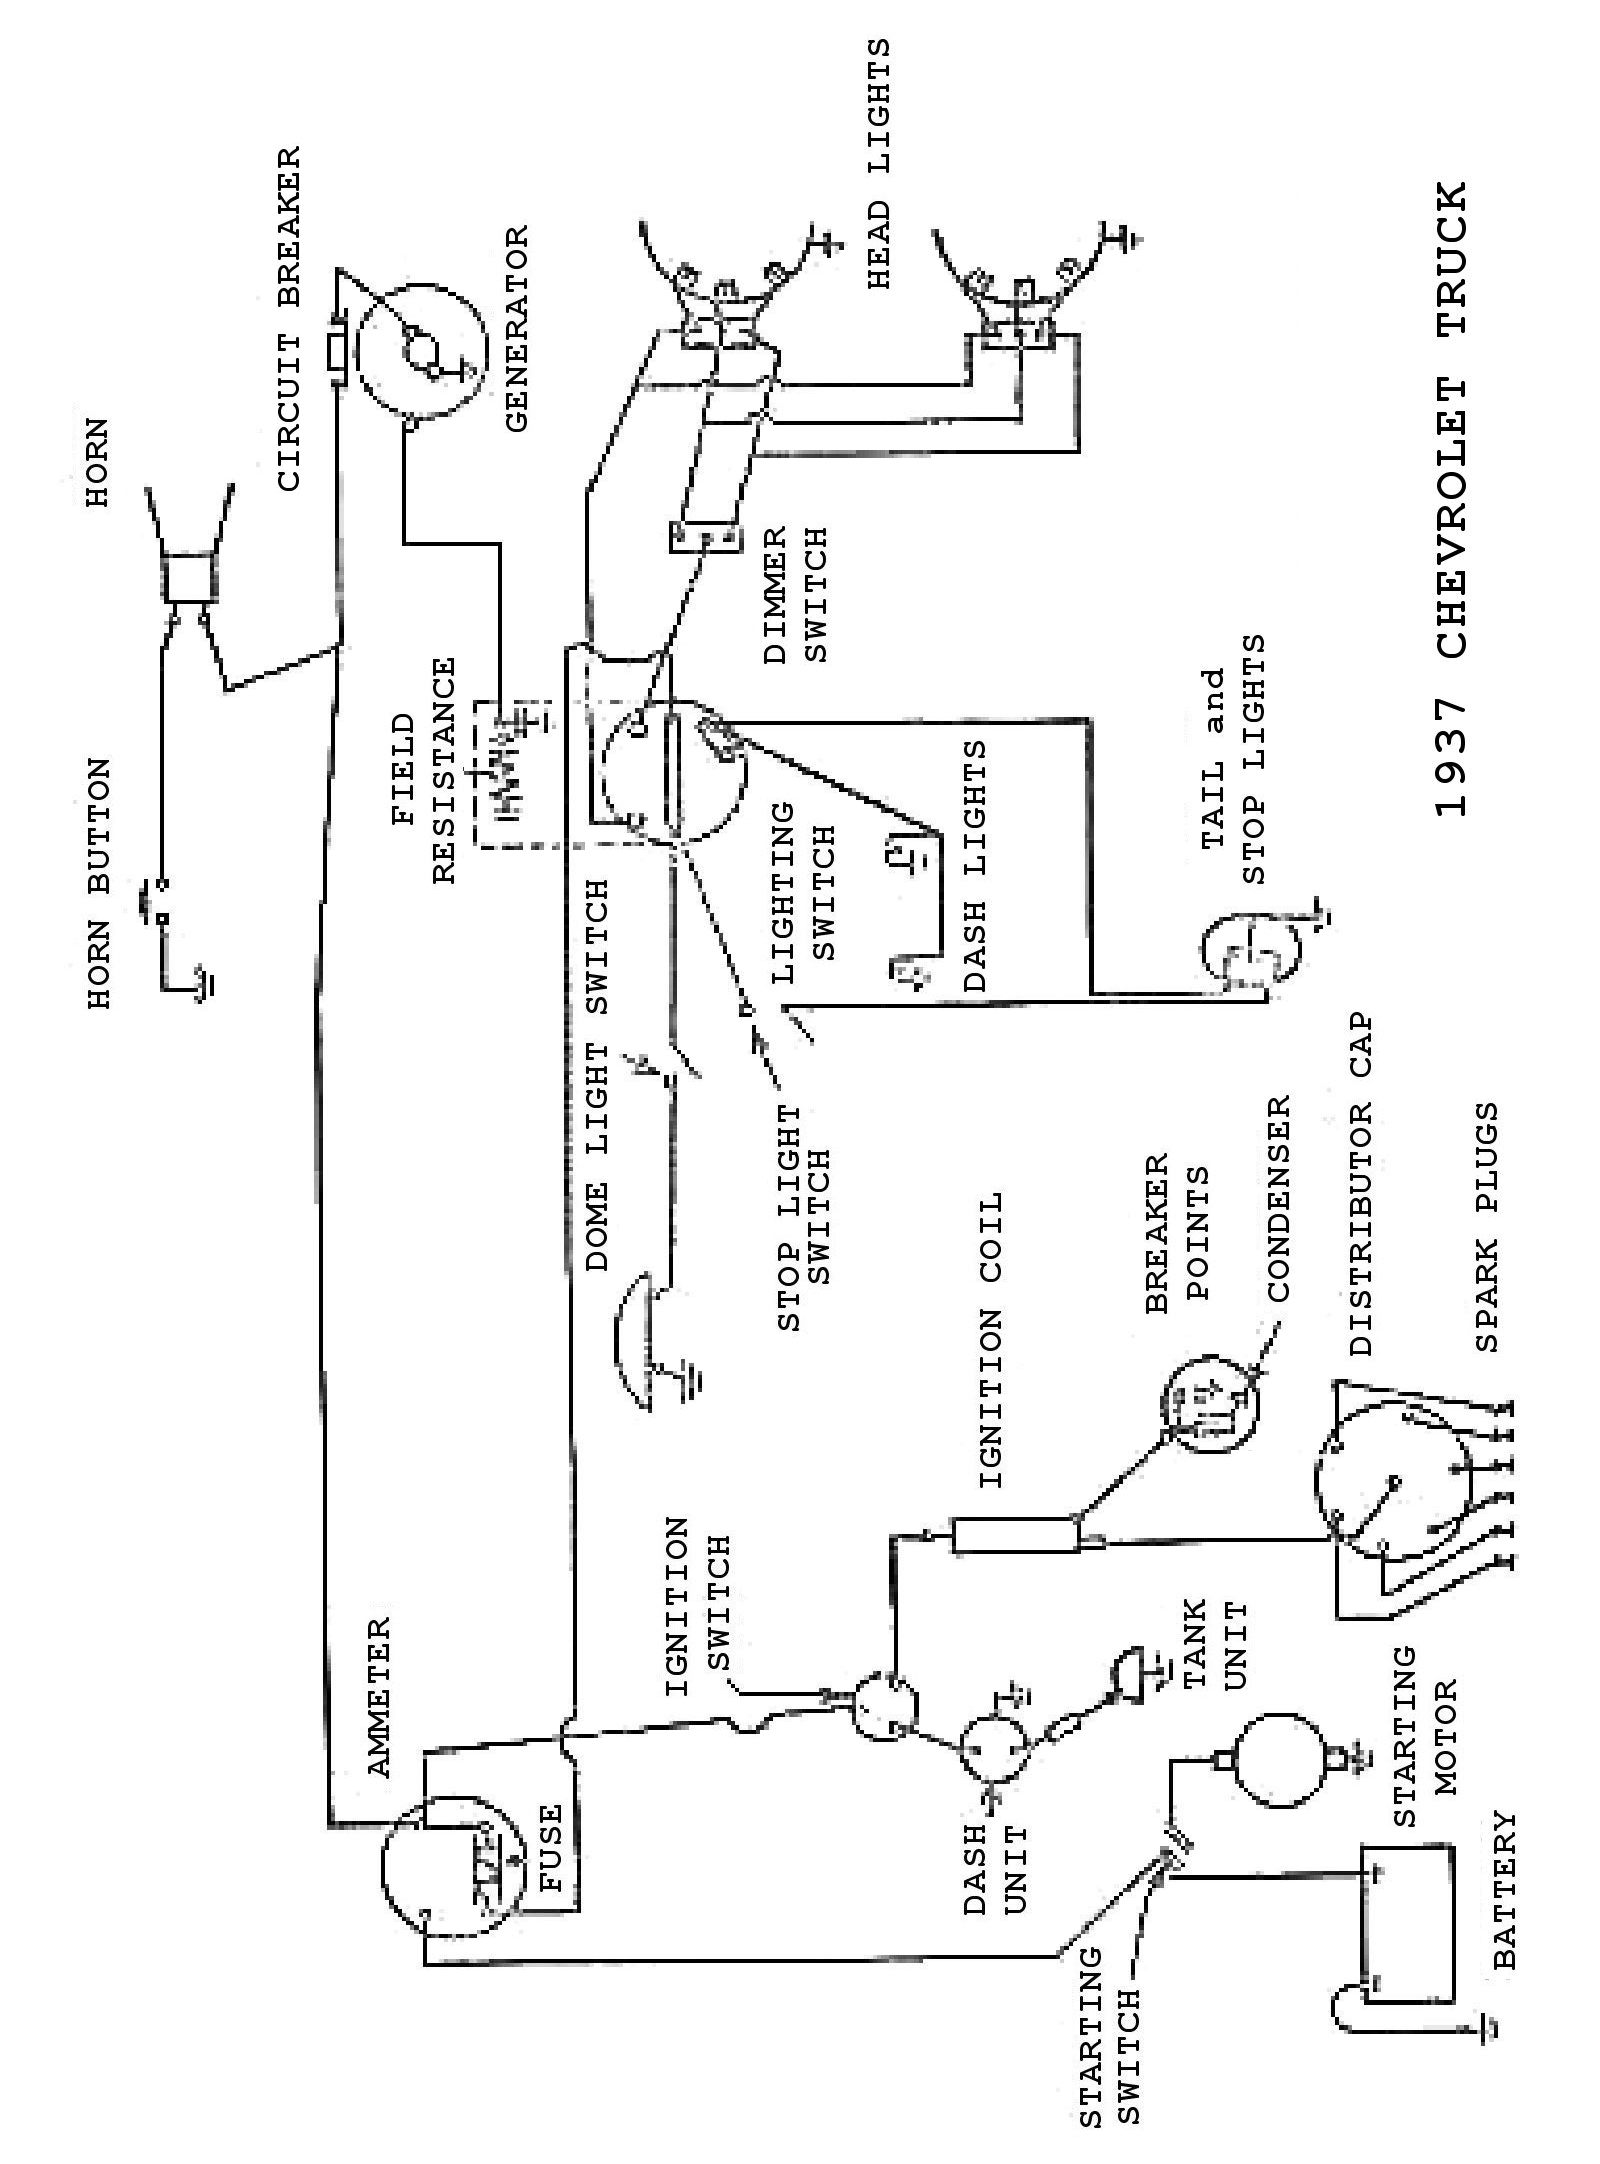 1998 Winnebago Chieftain Dash Wiring Diagram